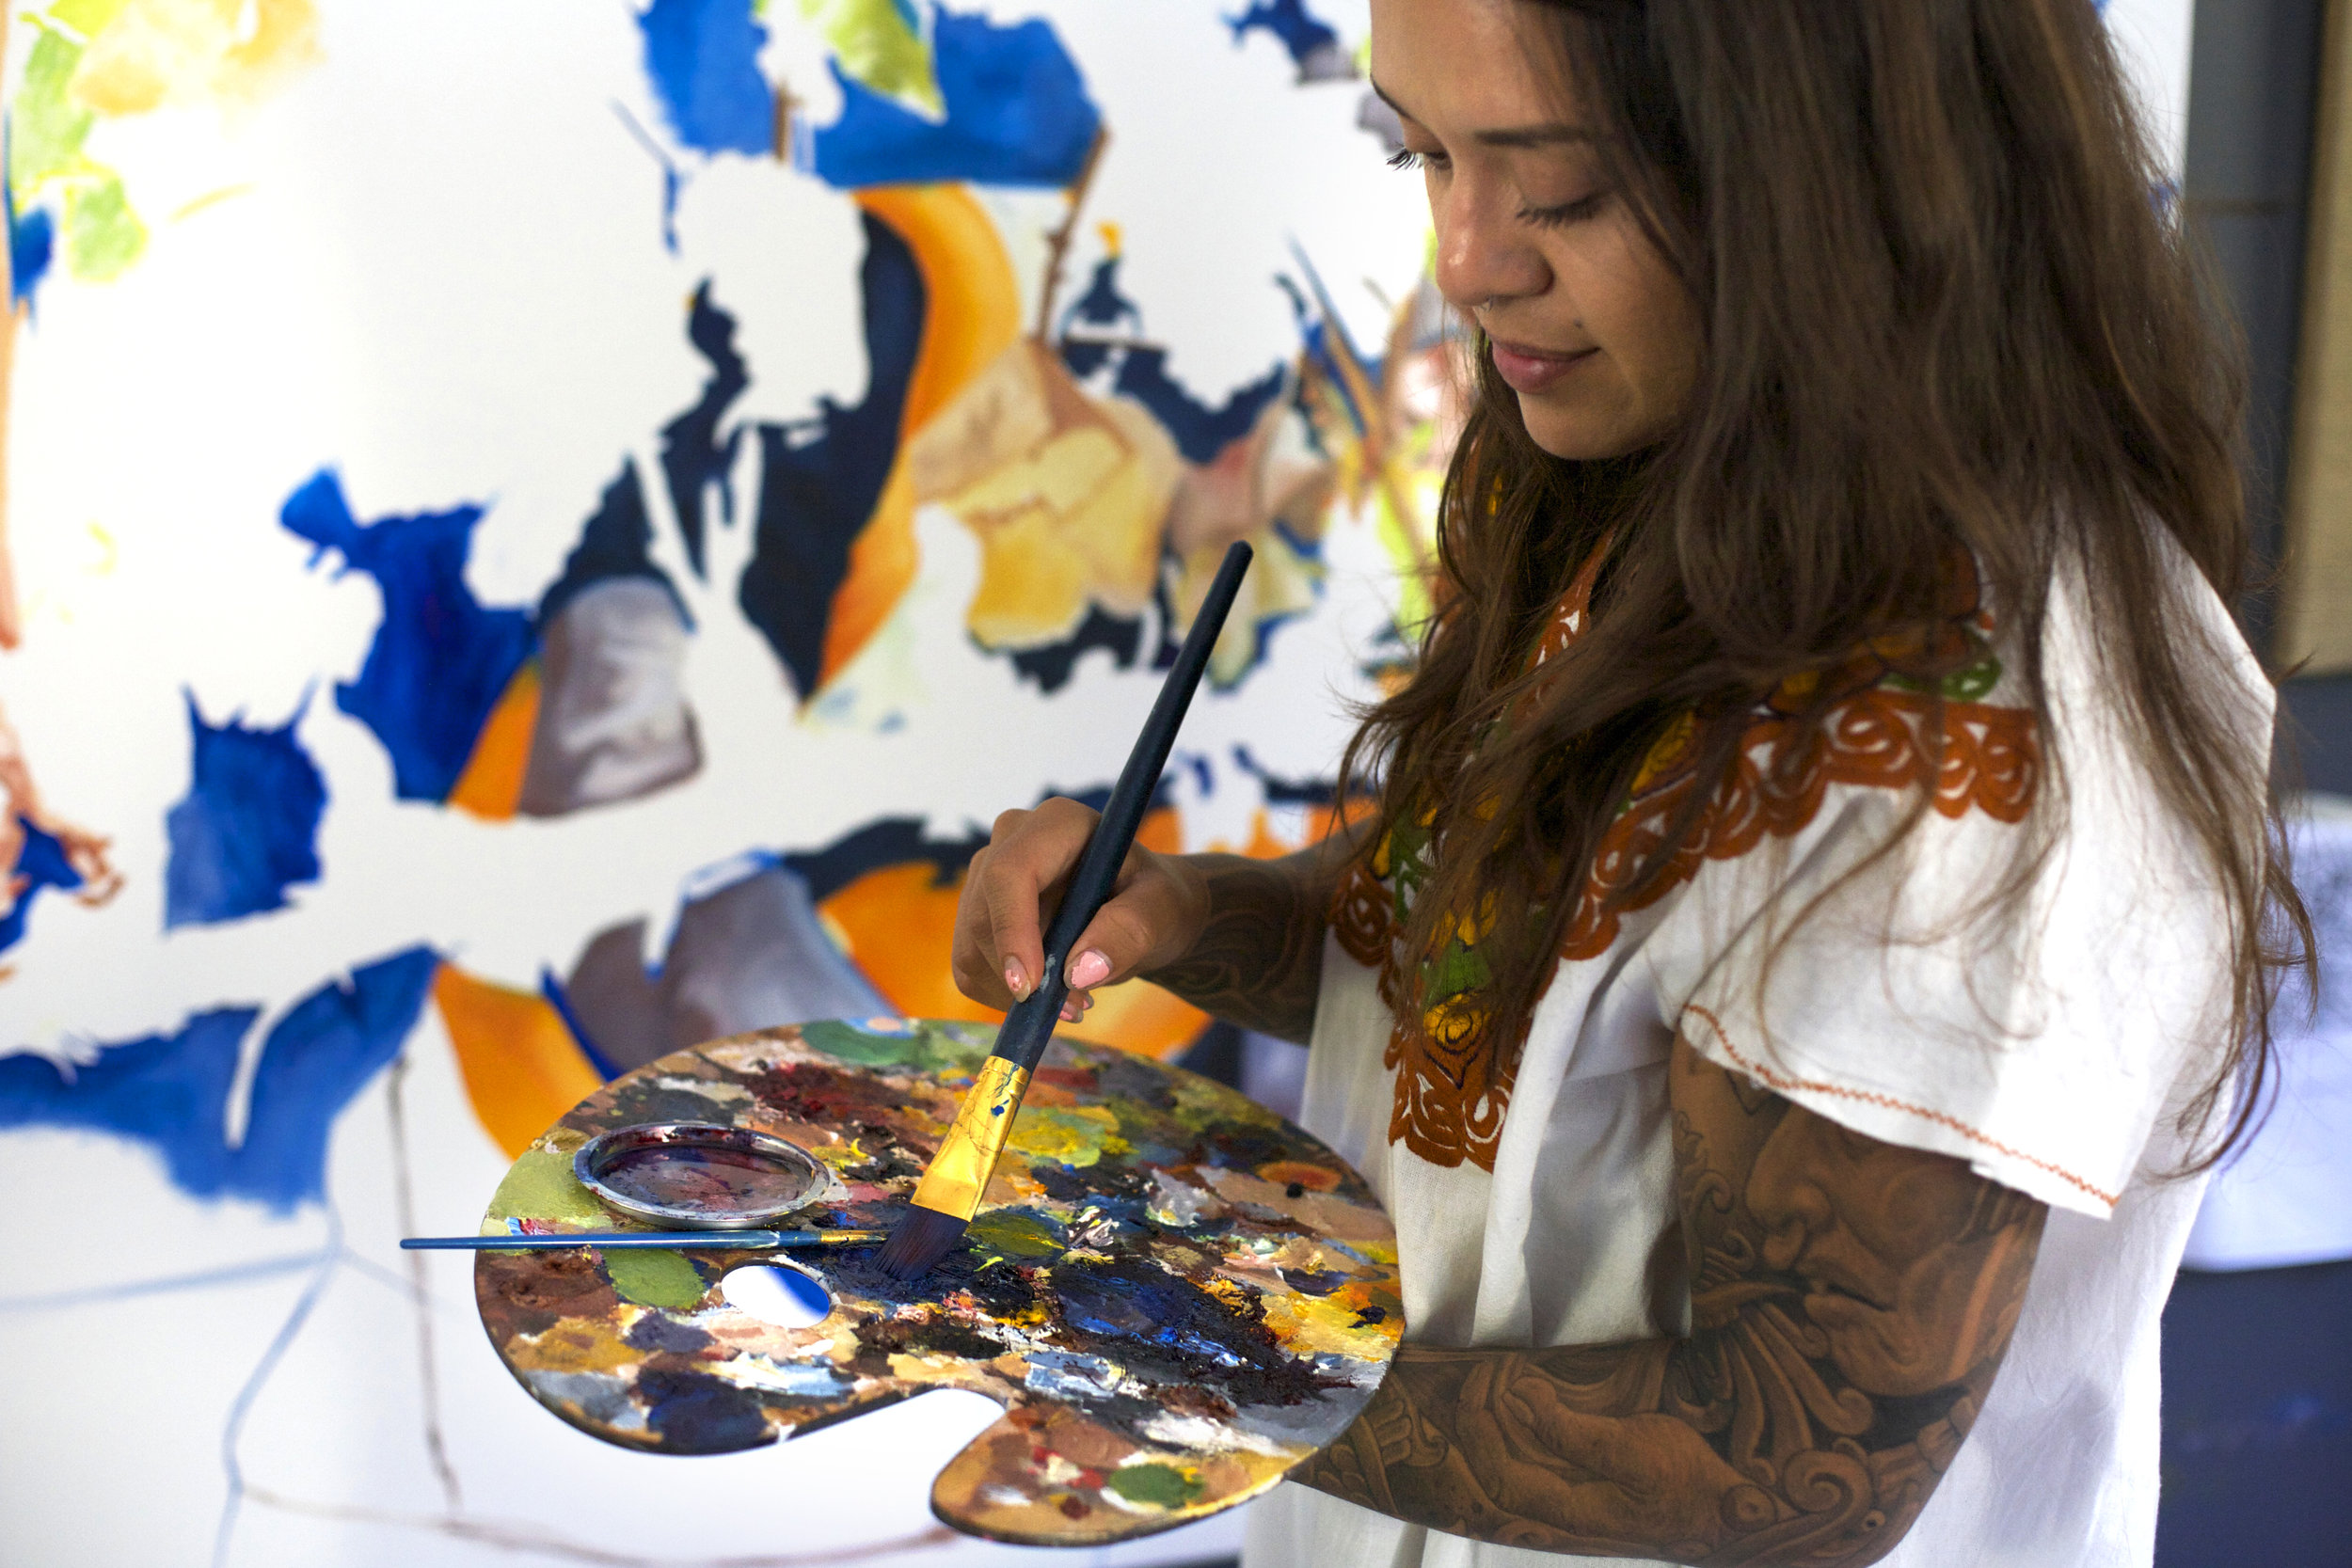 Arleene Correa Valencia works on a painting in her latest series:  In Times of Crisis, En Tiempo de Crisis.    Rachael Bongiorno for NPR